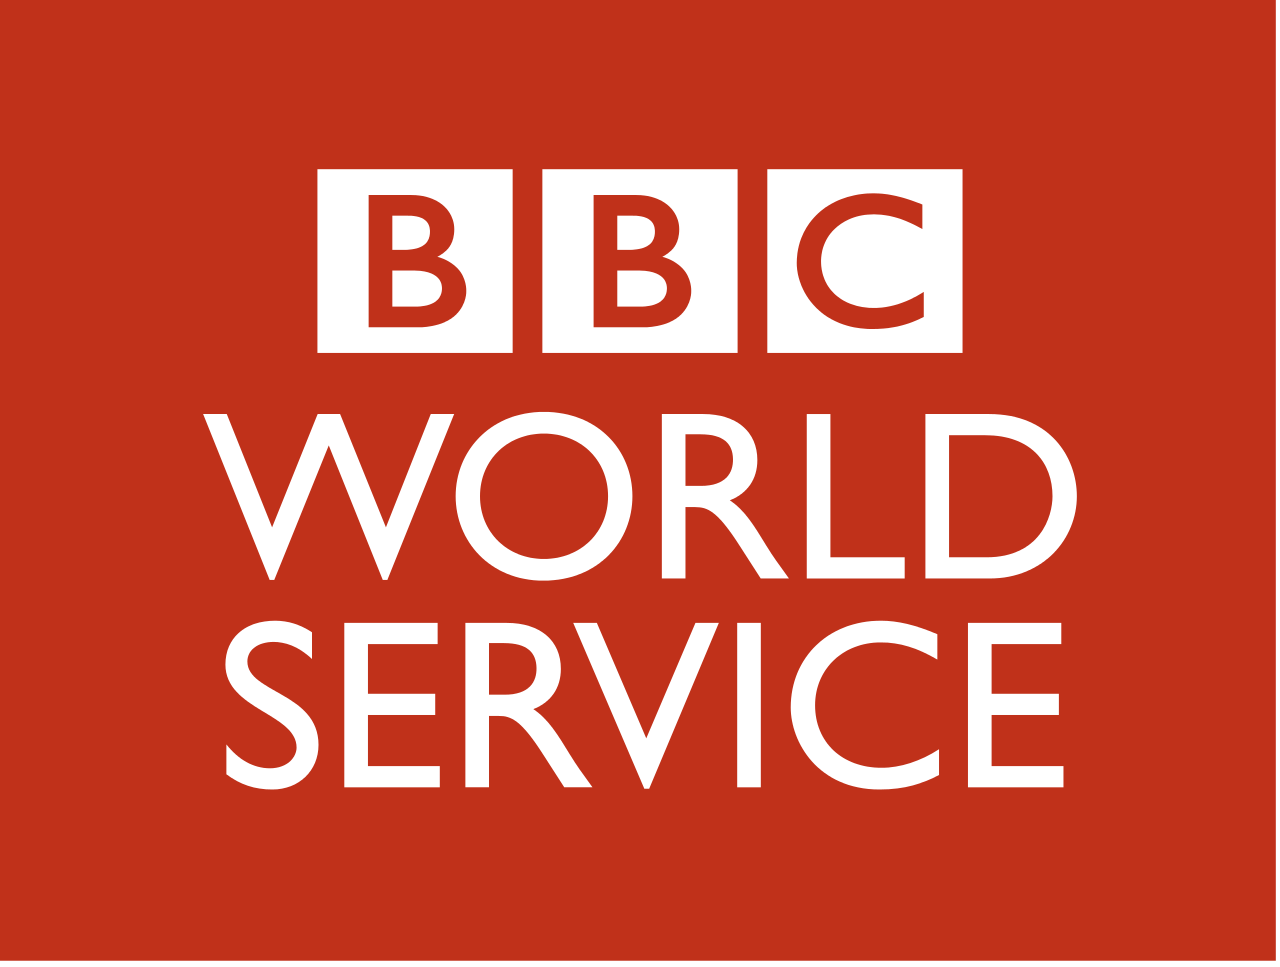 BBC_World_Service_red.png